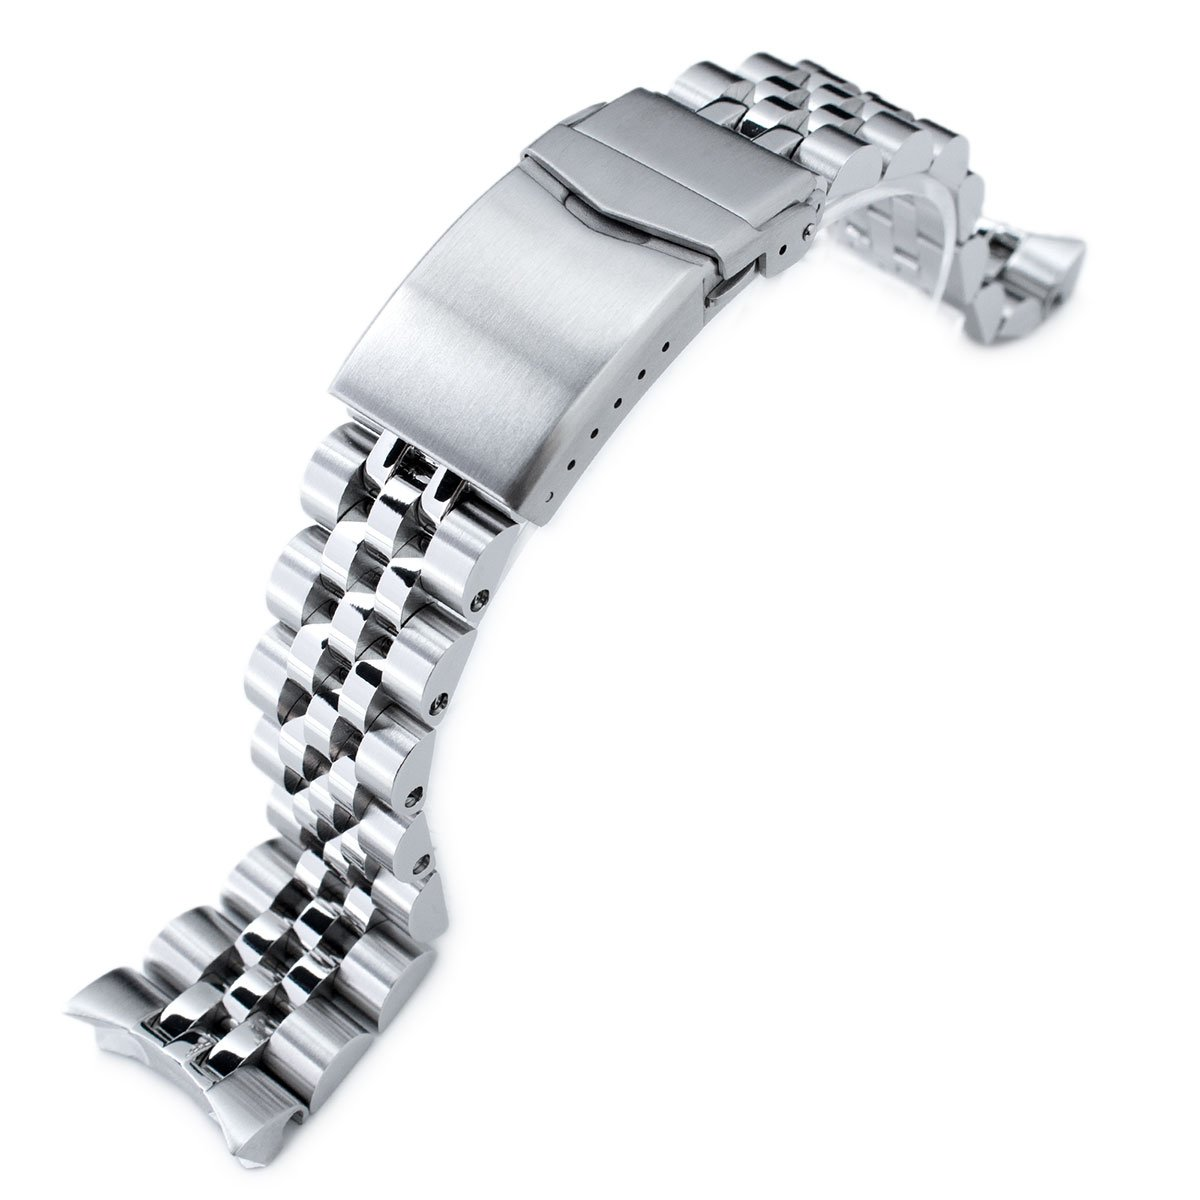 22mm Angus Jubilee 316L SS Watch Bracelet for Seiko SKX007, Brushed/Polished, V-Clasp by Seiko Replacement by MiLTAT